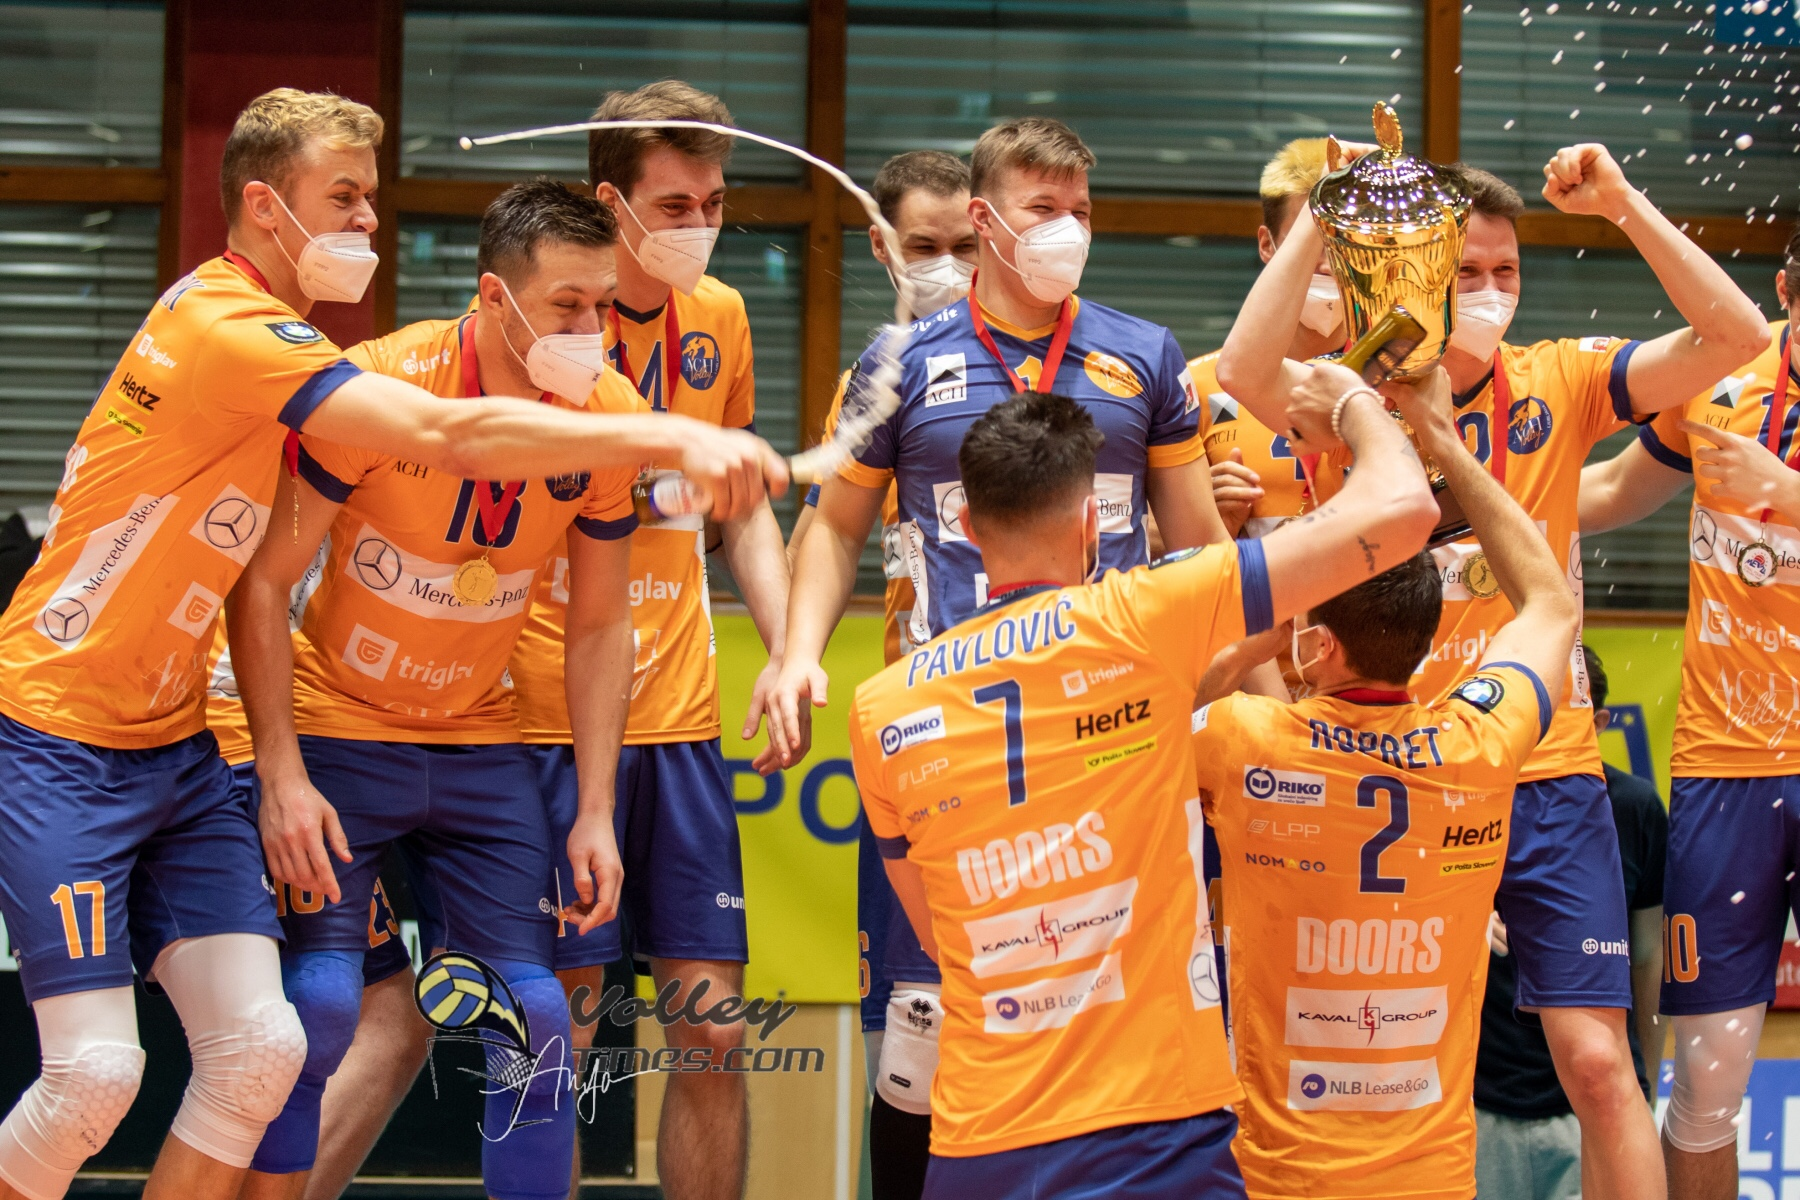 ACH Volley claimed the 11th MEVZA League title. Podium is all Slovenians